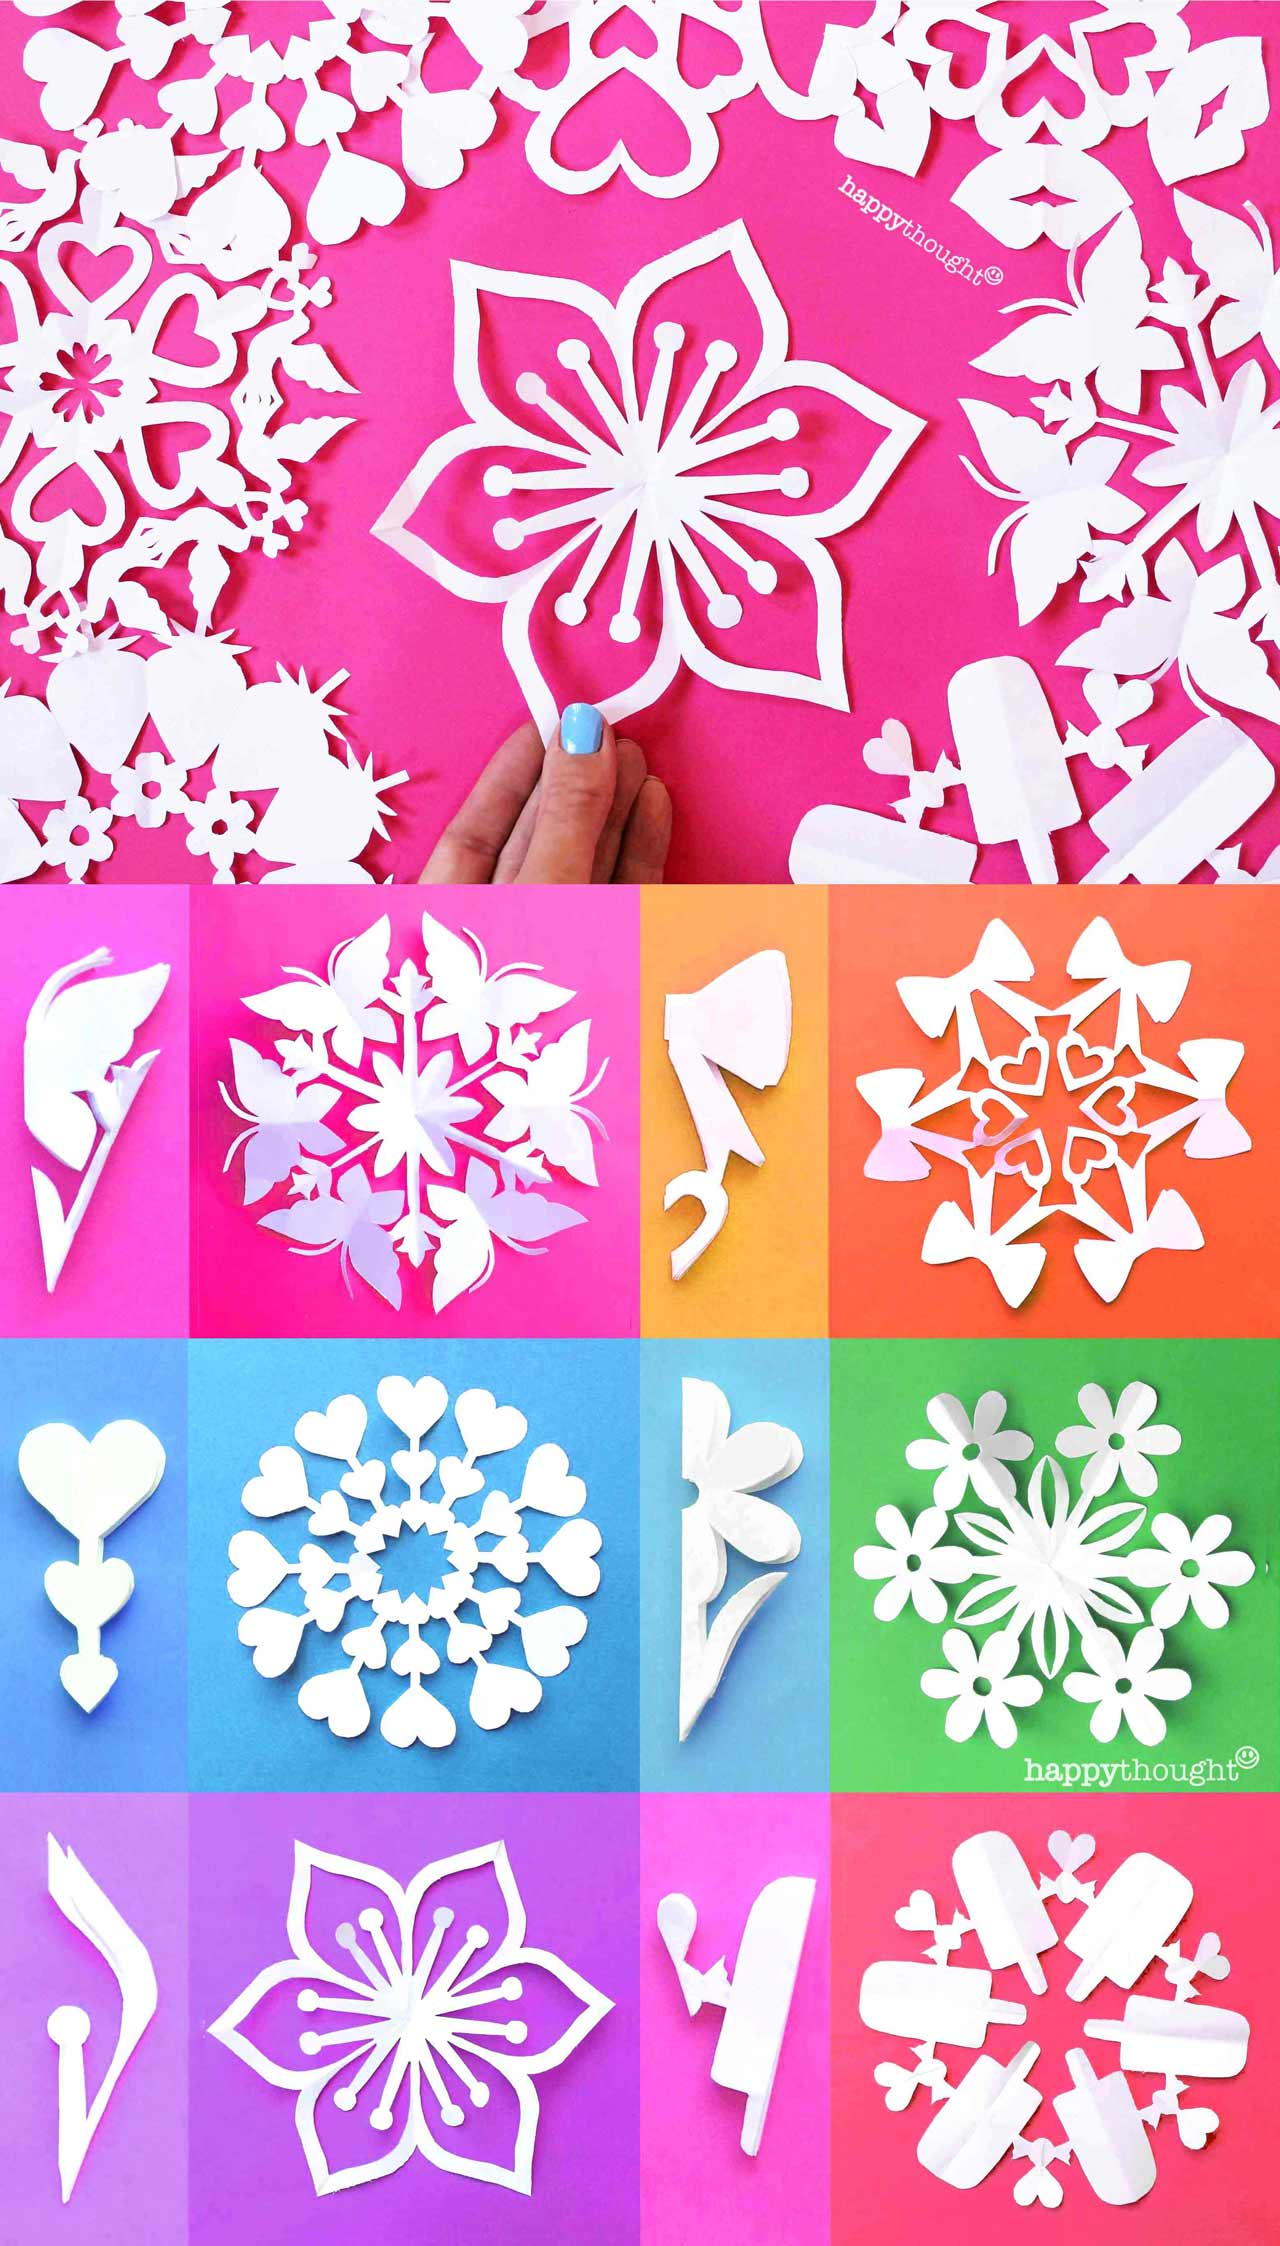 12 templates and patterns for St valentines day snowflake decorations